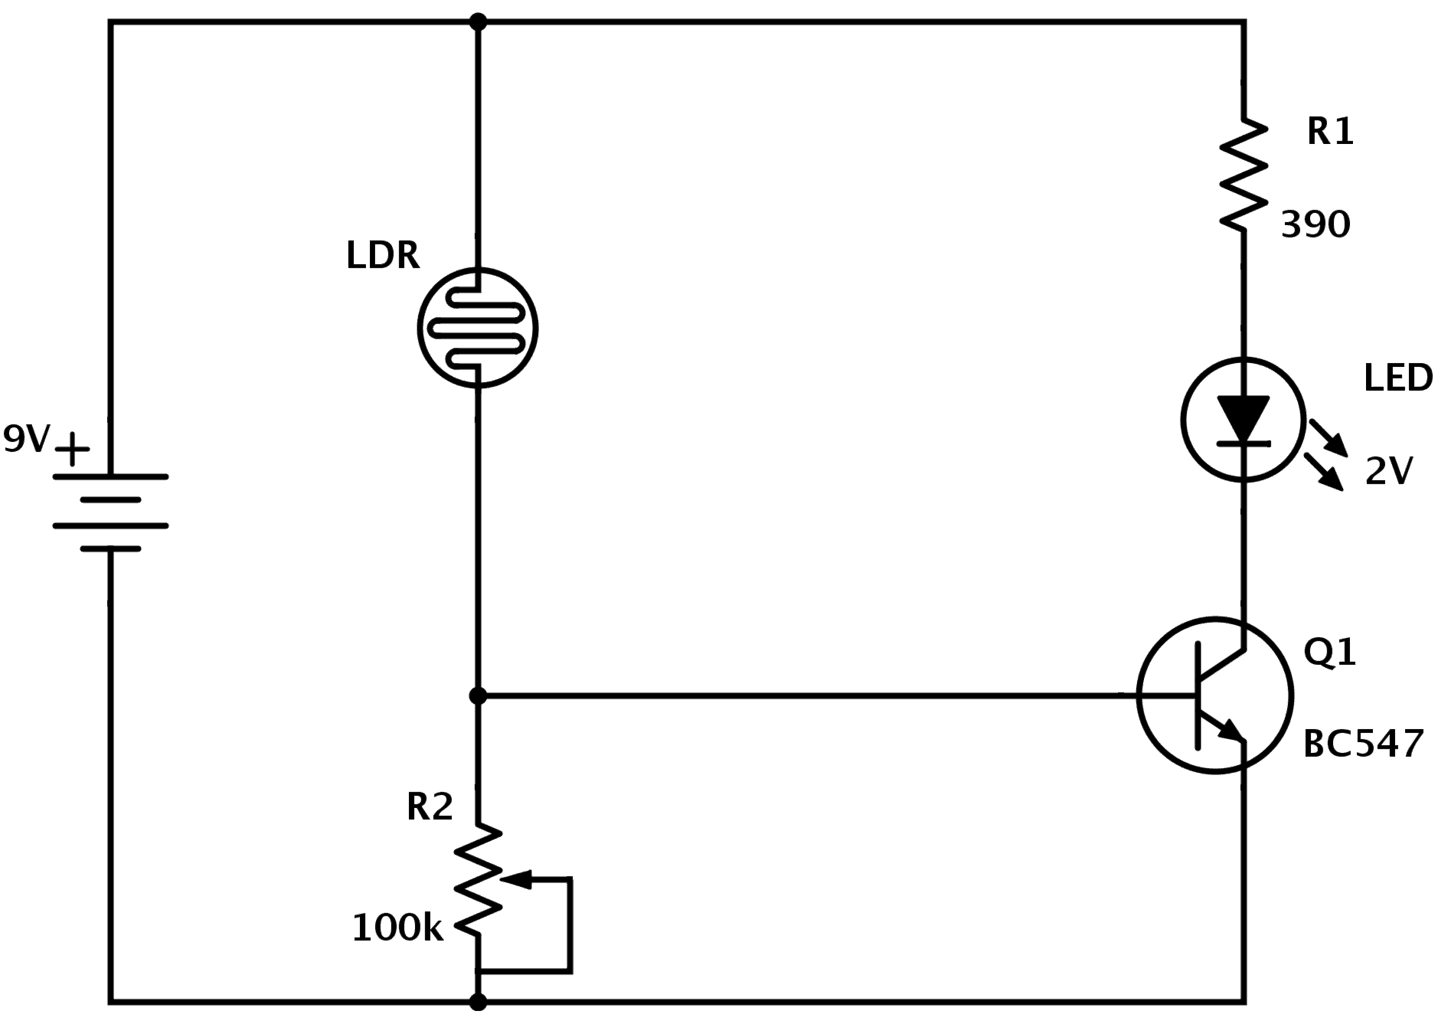 Ldr Circuit Diagram Build Electronic Circuits Wiring Triple Light Switch Free Download Diagrams